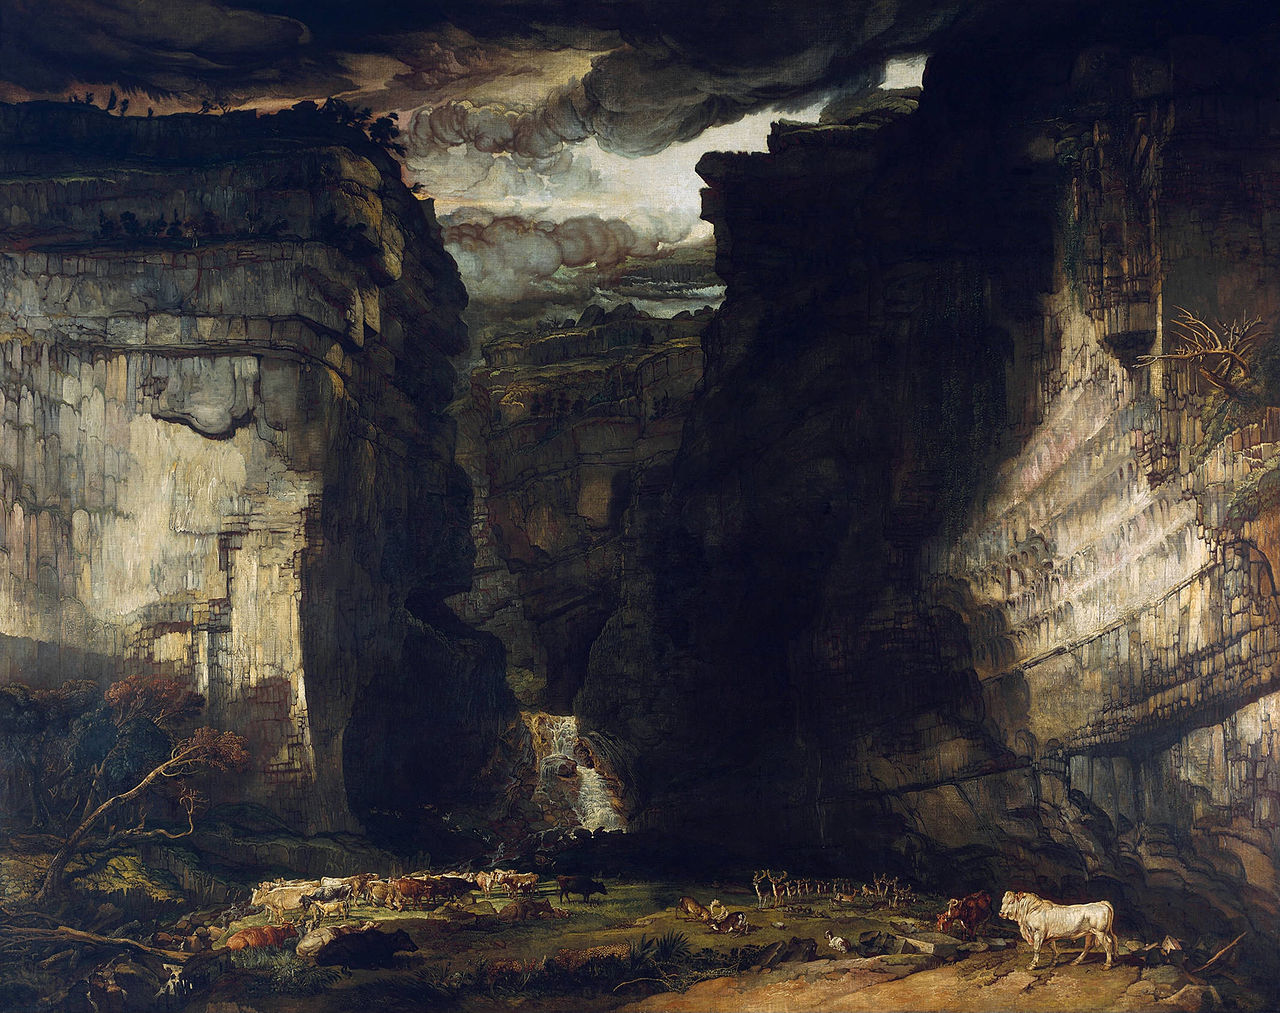 James Ward - Gordale Scar, circa 1812 - 1280px